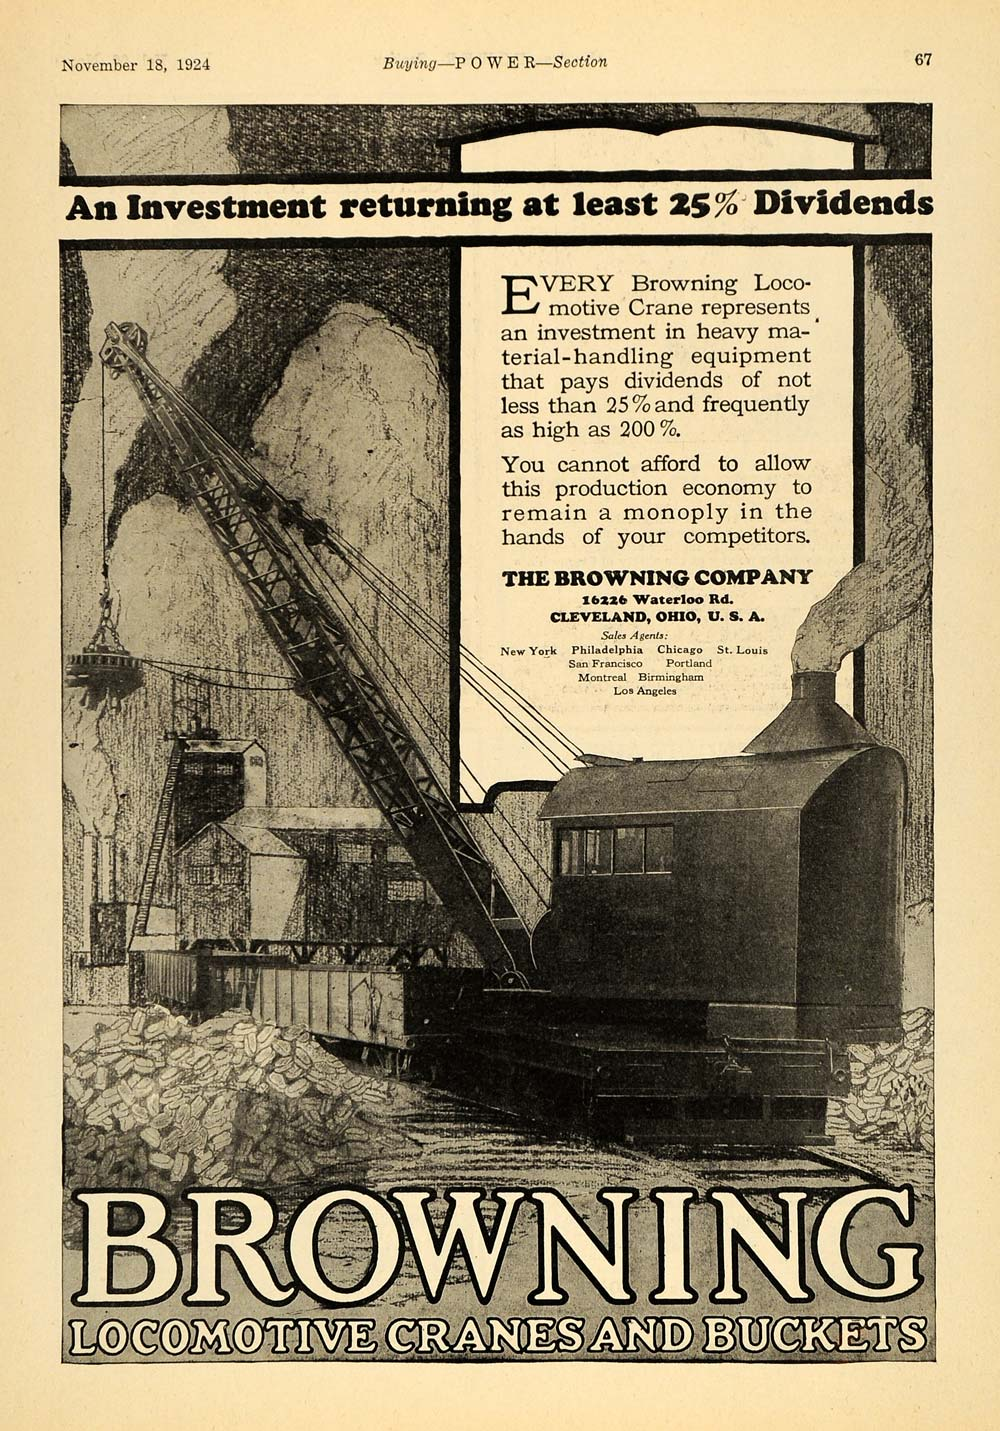 1924 Ad Browning Locomotive Cranes Buckets Cleveland - ORIGINAL ADVERTISING TPM1